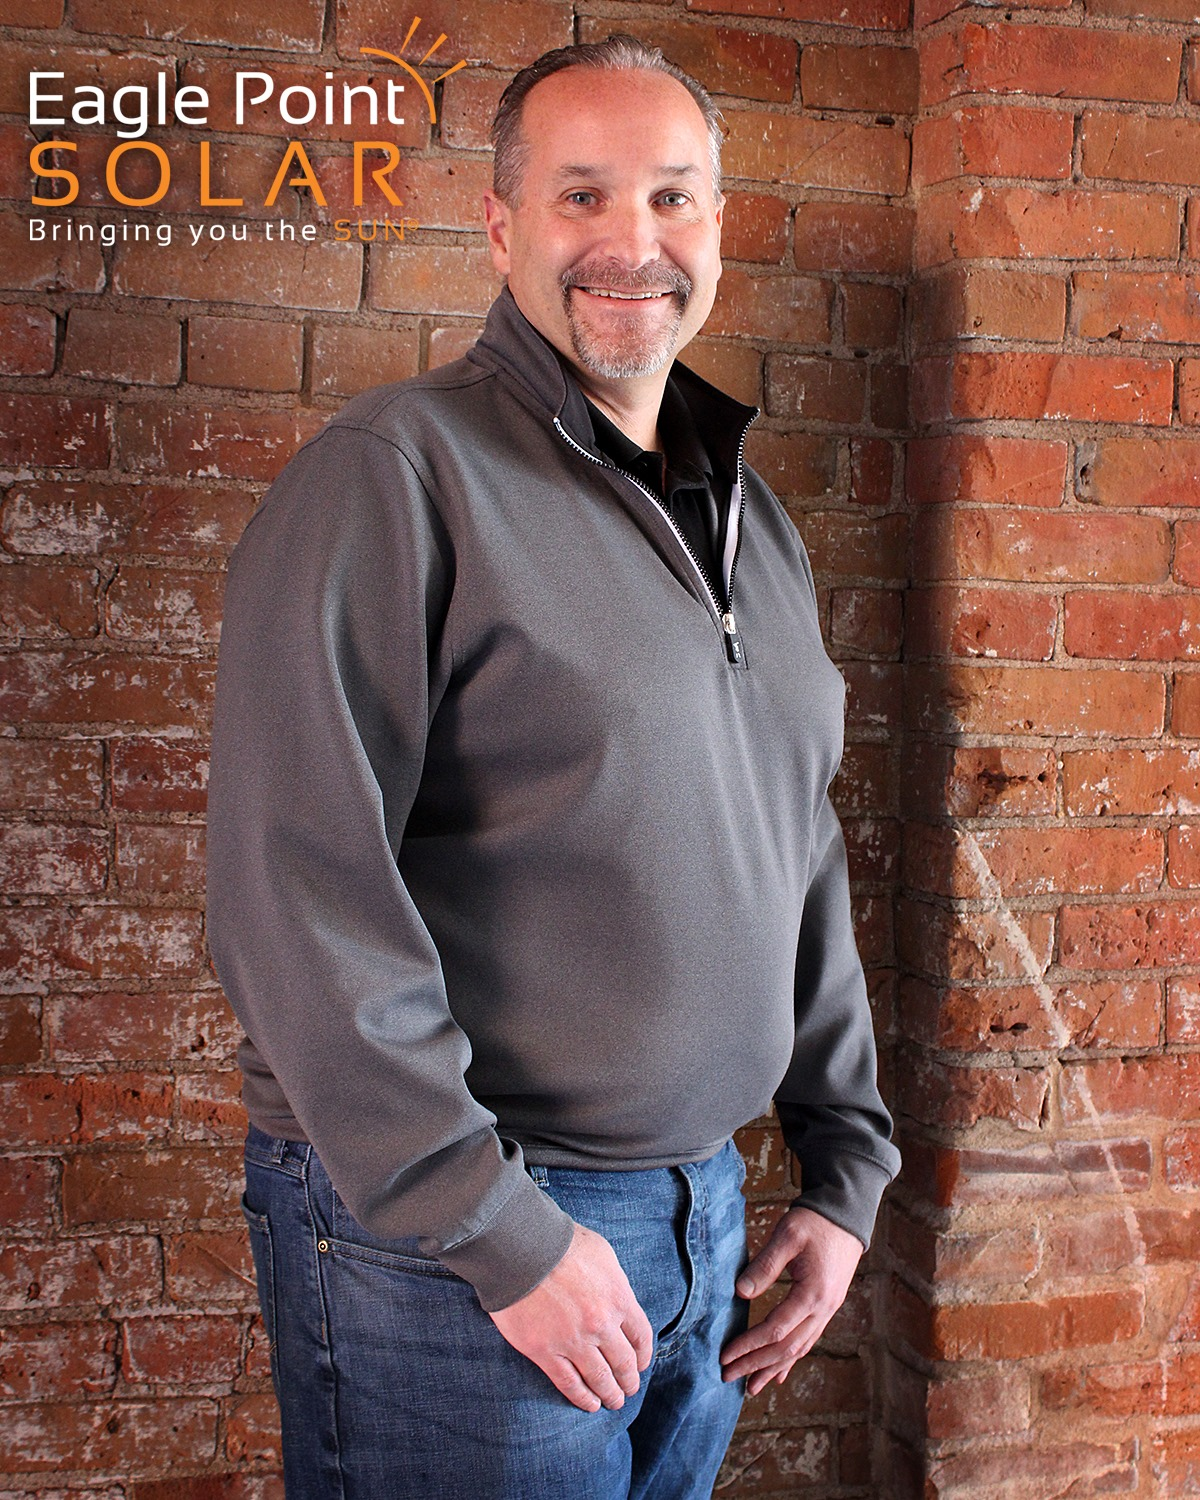 Randy has experience handling large solar projects